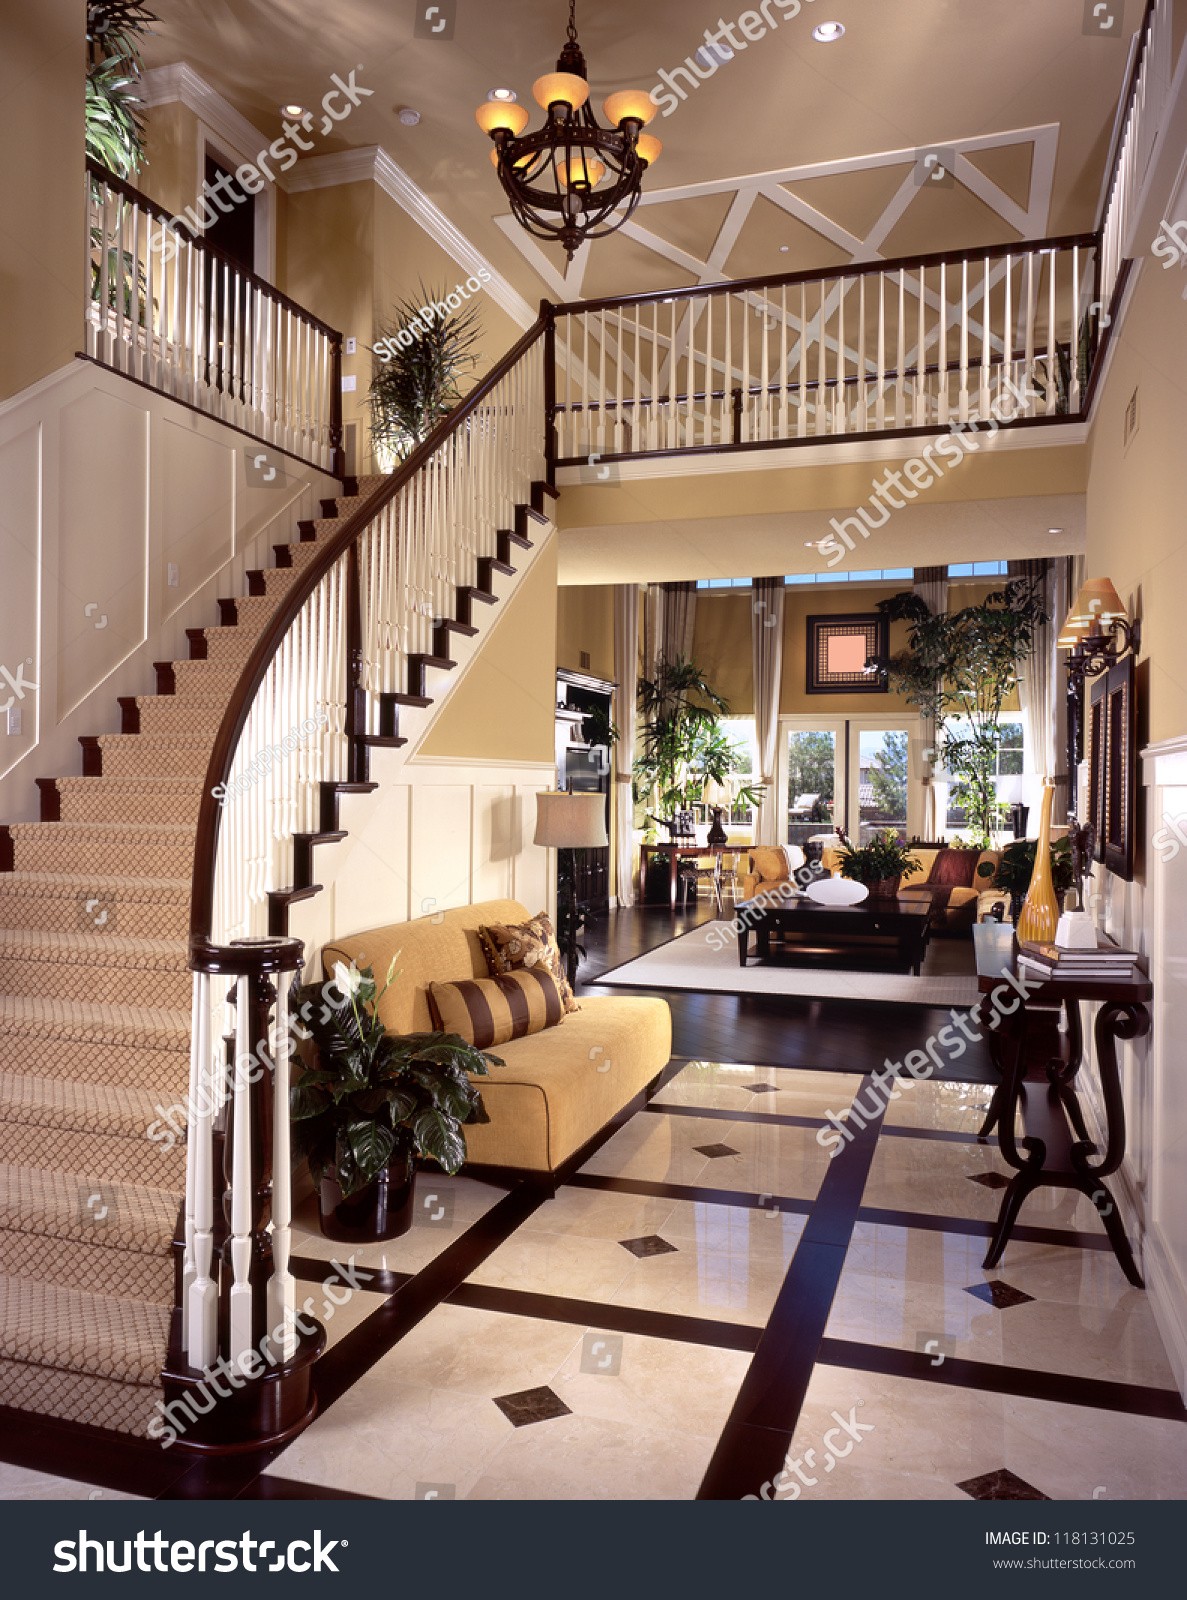 Beautiful Entry Staircase This Luxury Stairway Stock Photo